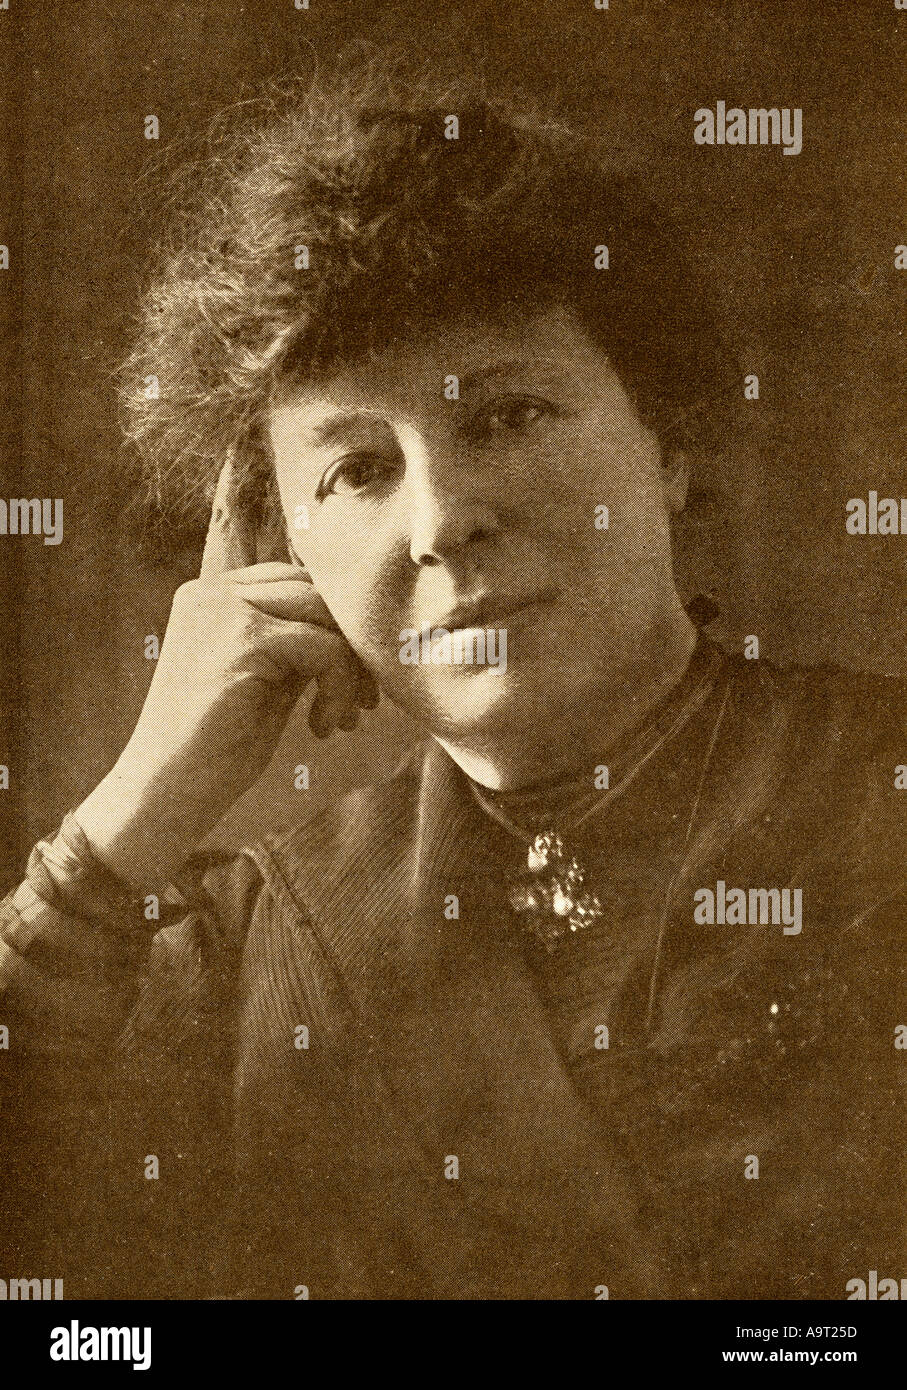 Lucy Clifford aka Mrs W. K. Clifford, 1853 -1929. English journalist, novelist and dramatist. - Stock Image